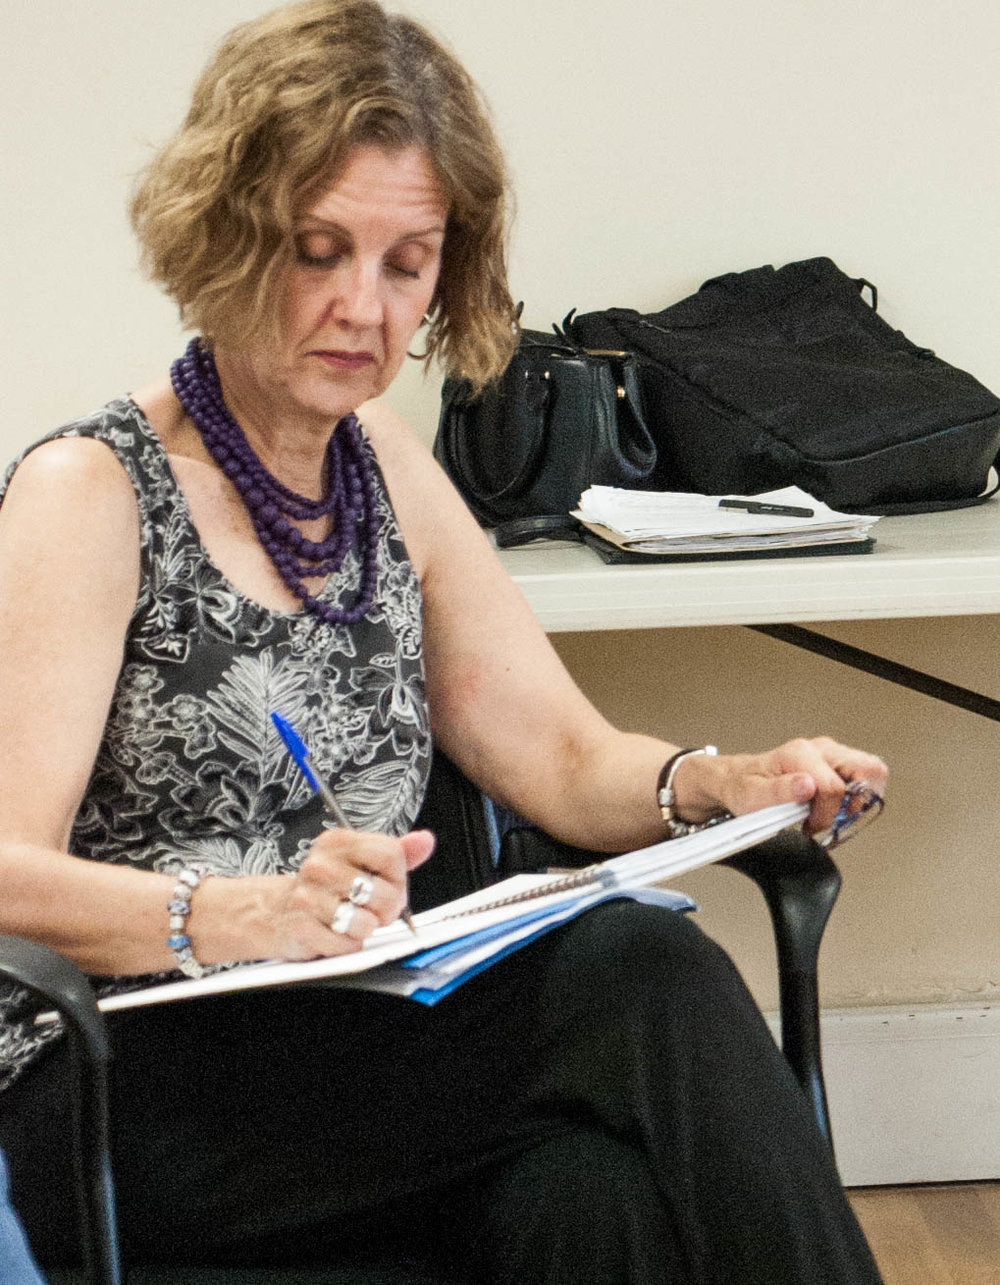 Judi Lagana, Co-editor, at an Amherst Writers Workshop